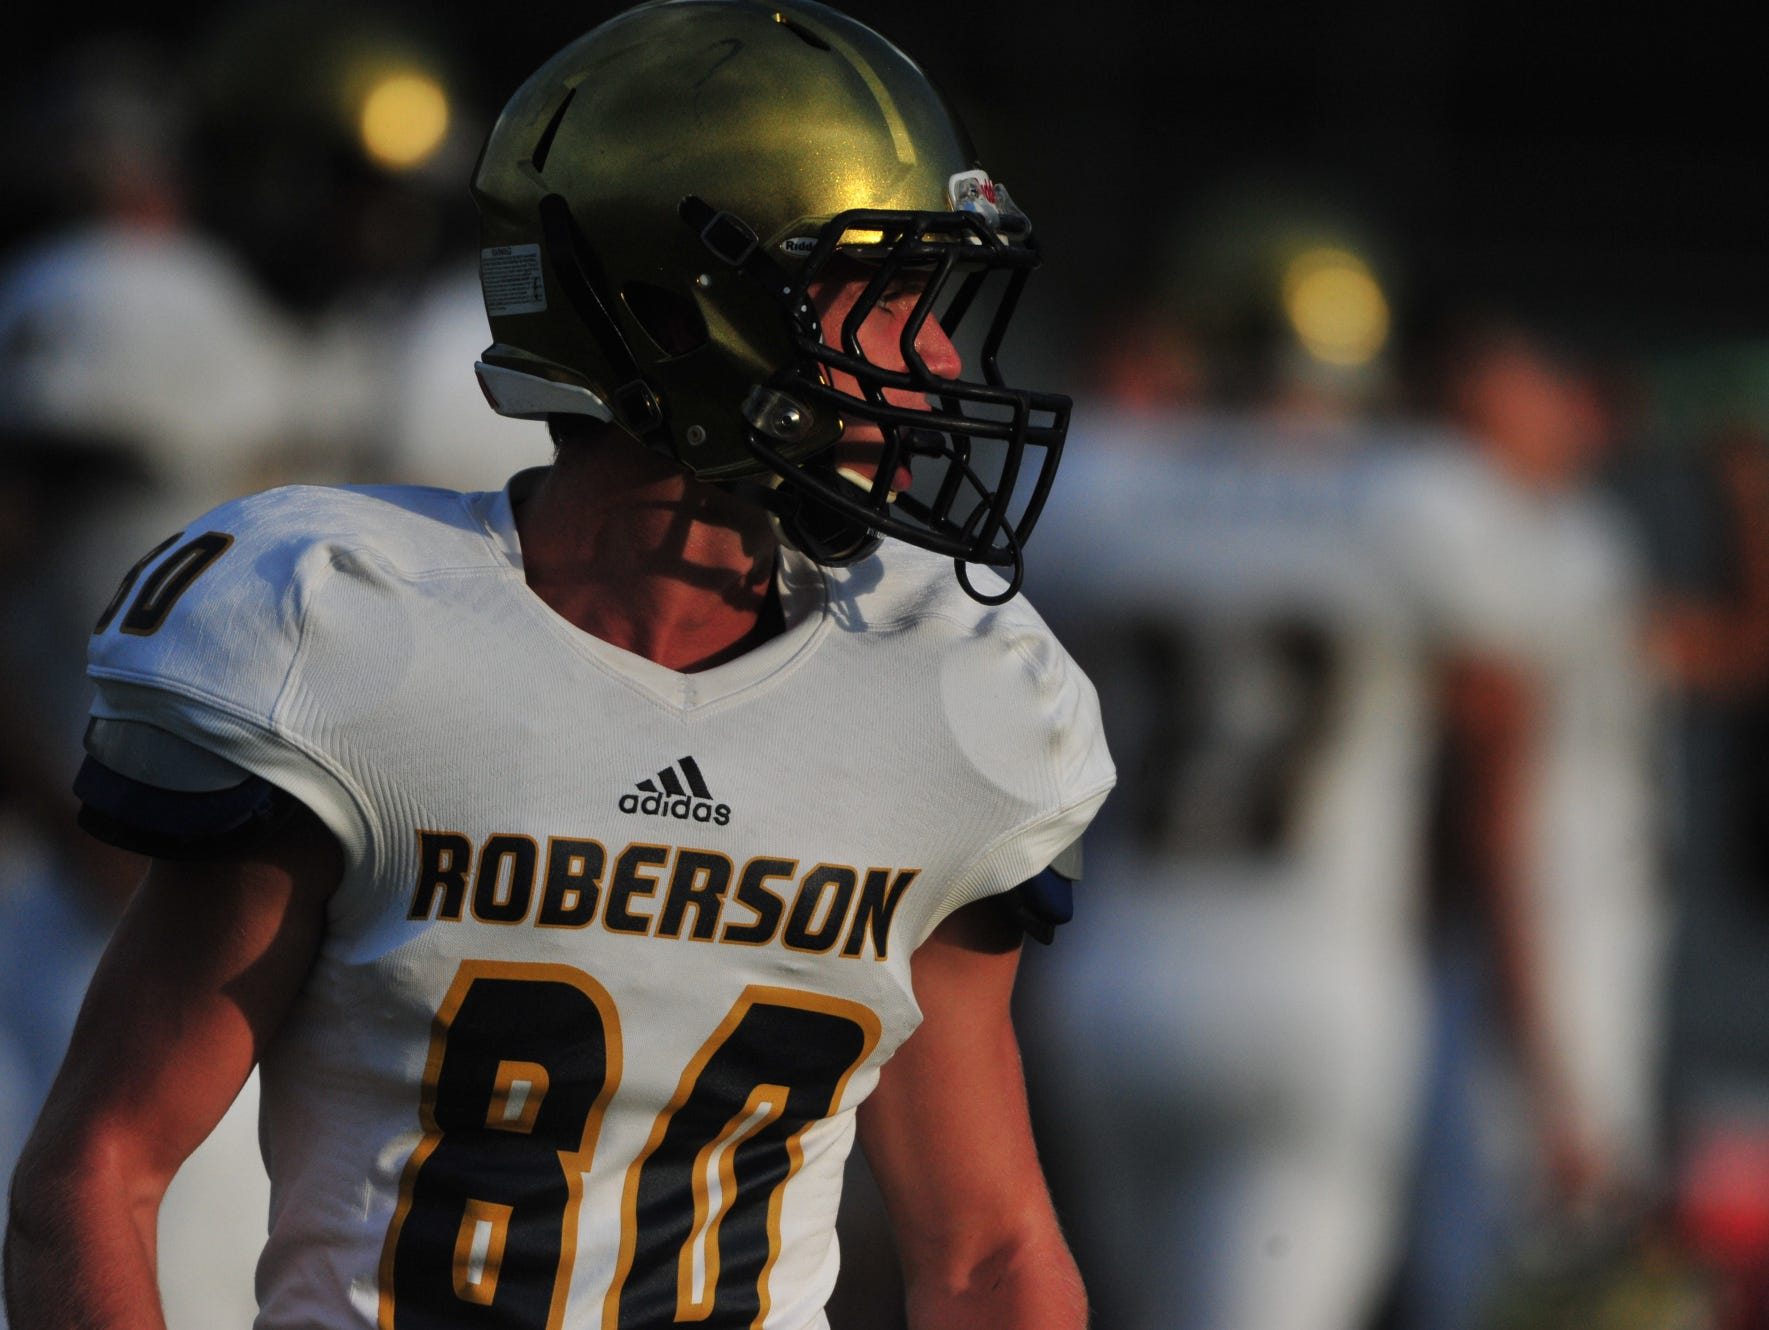 Roberson will hold its football camp on July 27-29.